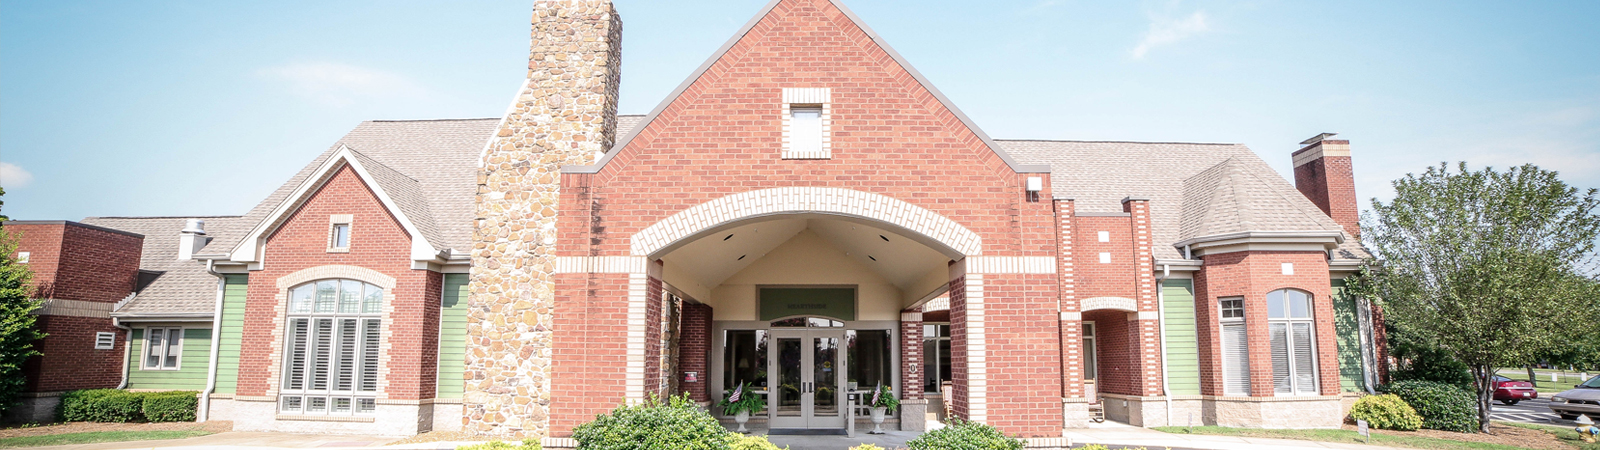 Hearthside Senior Living Front Entrance